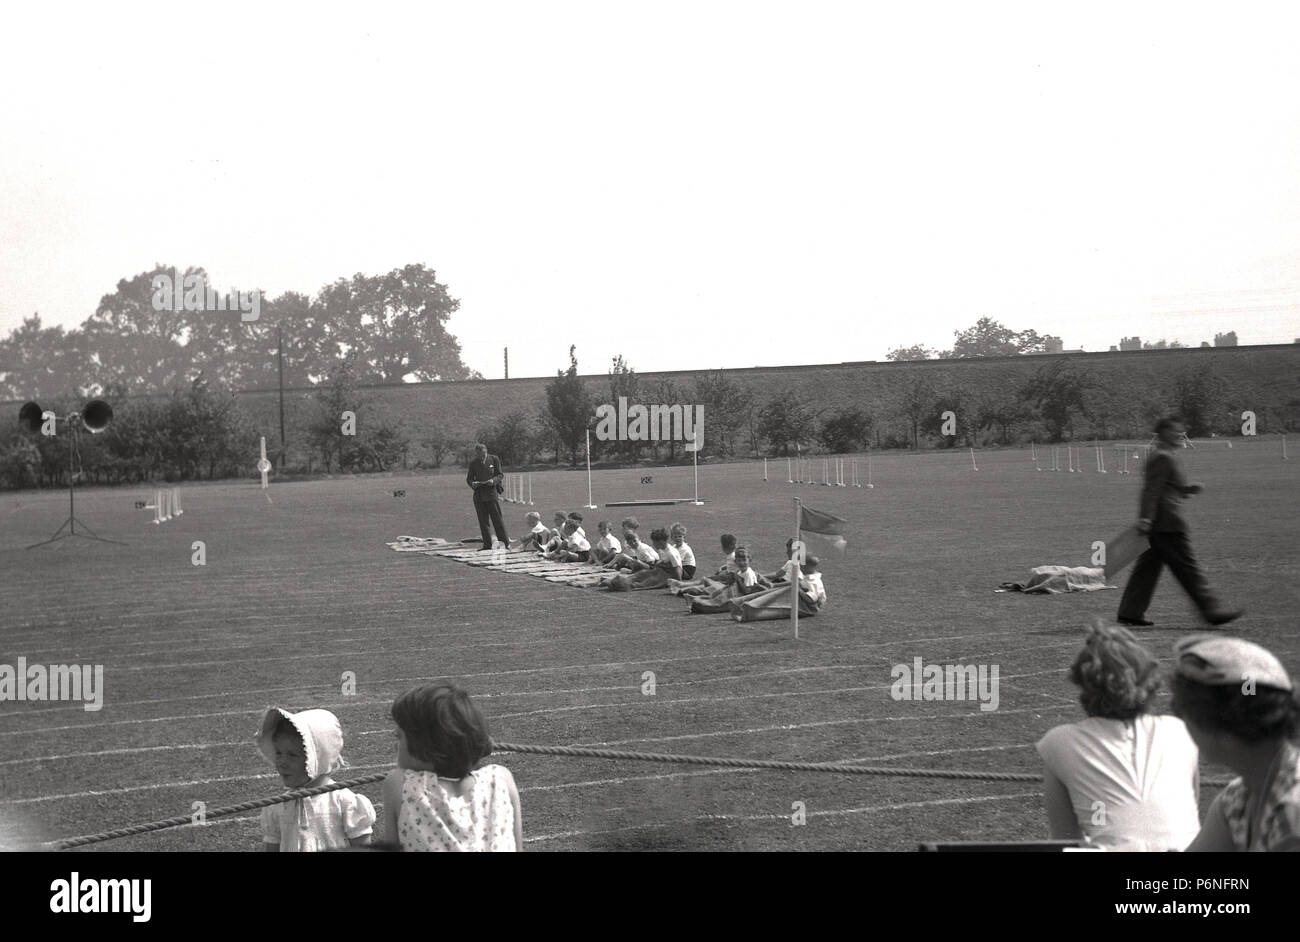 1950s, sack race at a primary school sports day...young children sitting down on the grass before the start of the traditional sack race, England, UK. - Stock Image